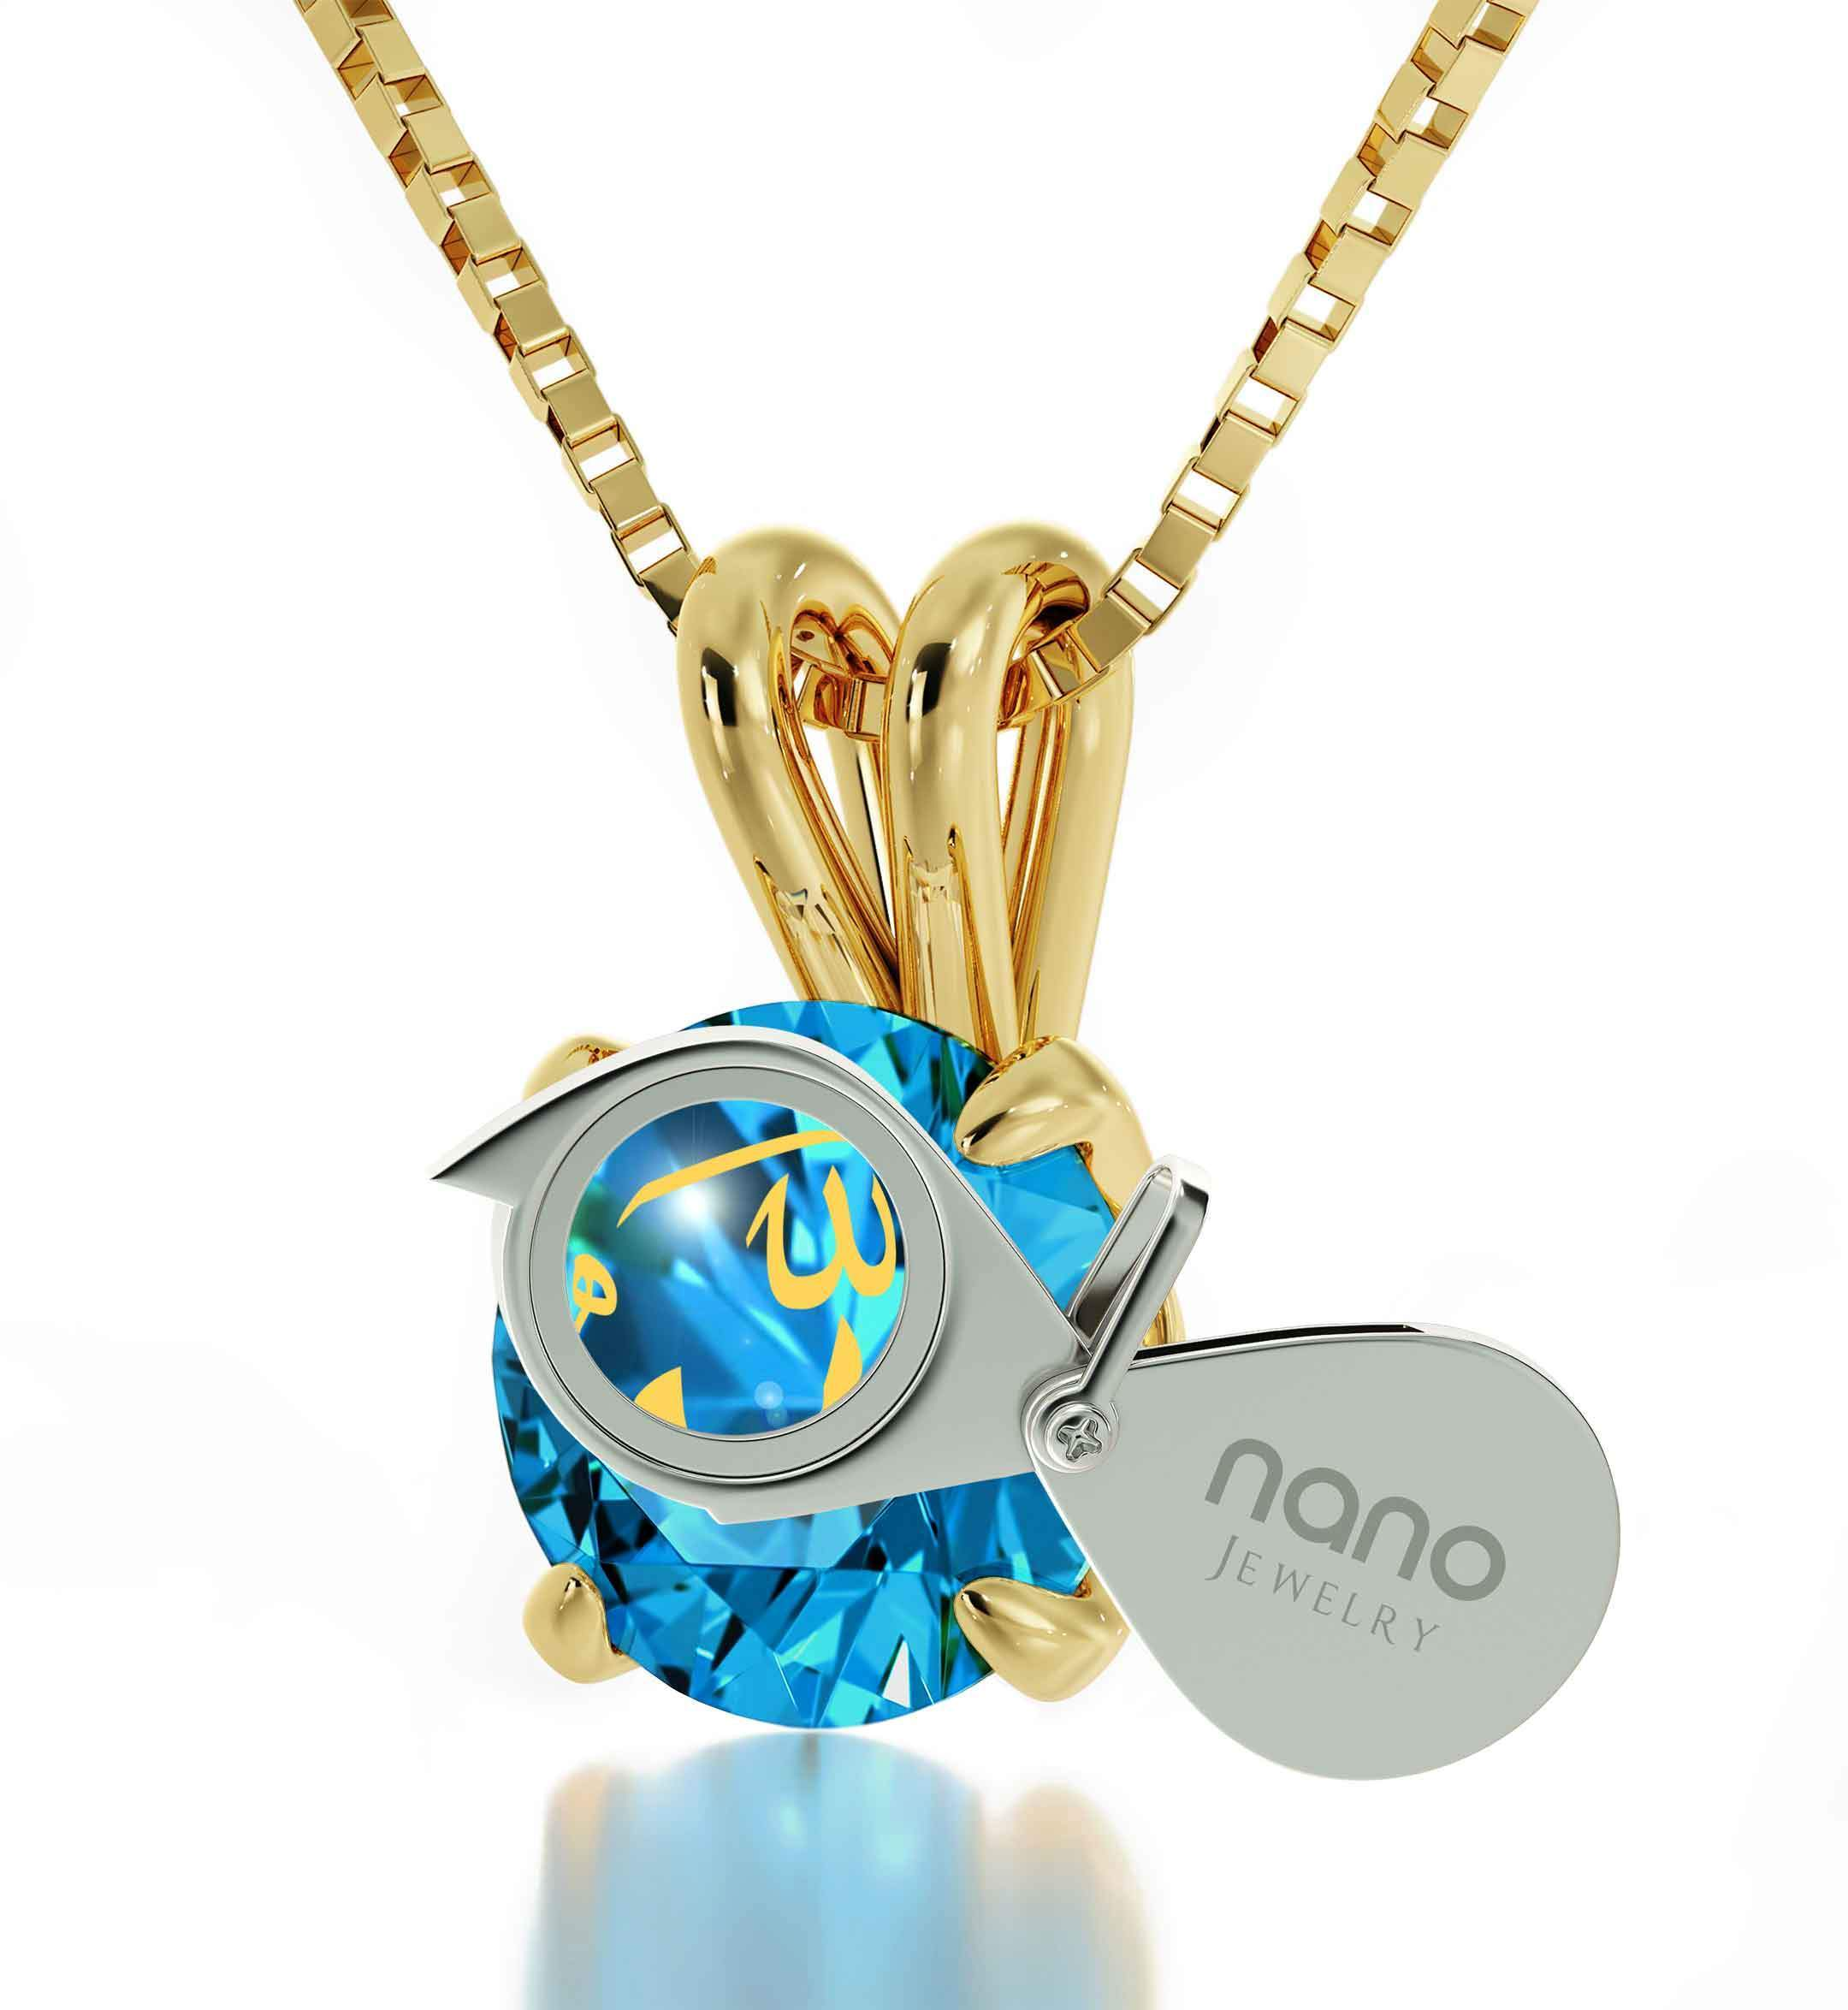 """Allah"" in Arabic in 24k Imprint, Islamic Necklace for Her, Muslim Jewelry, 14kt Gold Chain, Nano"